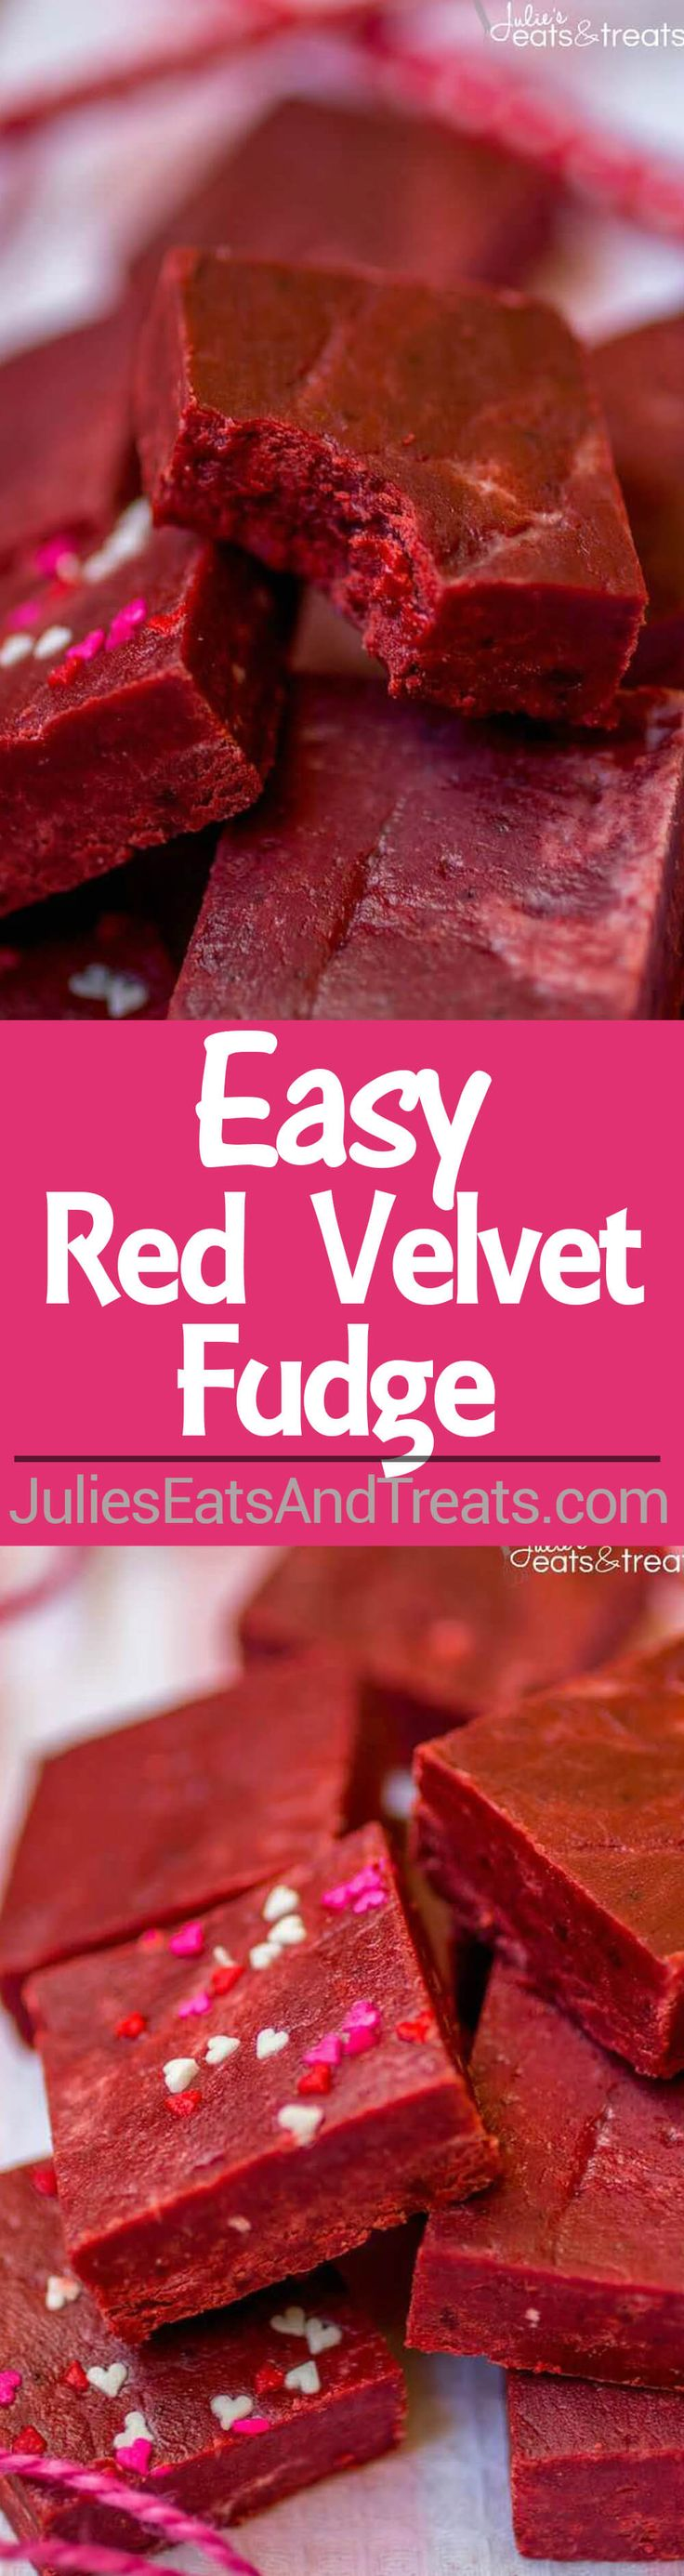 Red Velvet Fudge Recipe - This super easy fudge recipe comes together in minutes and melts in your mouth! It's the perfect addition to your Valentine's Day dessert spread.